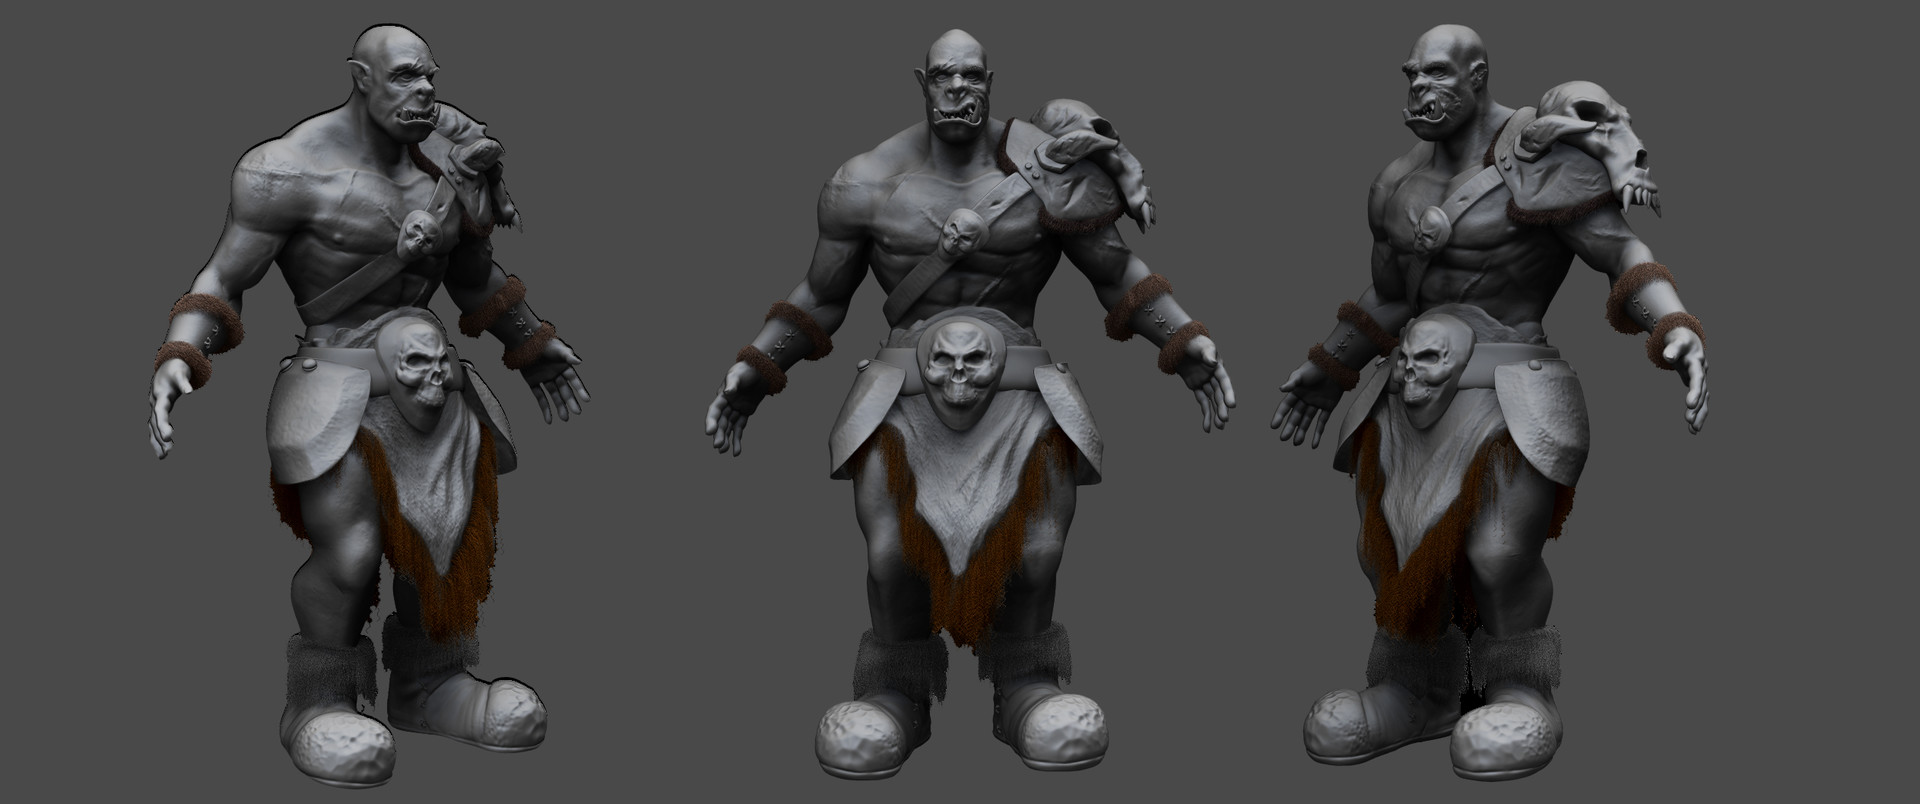 Mitchell sisson orc side render